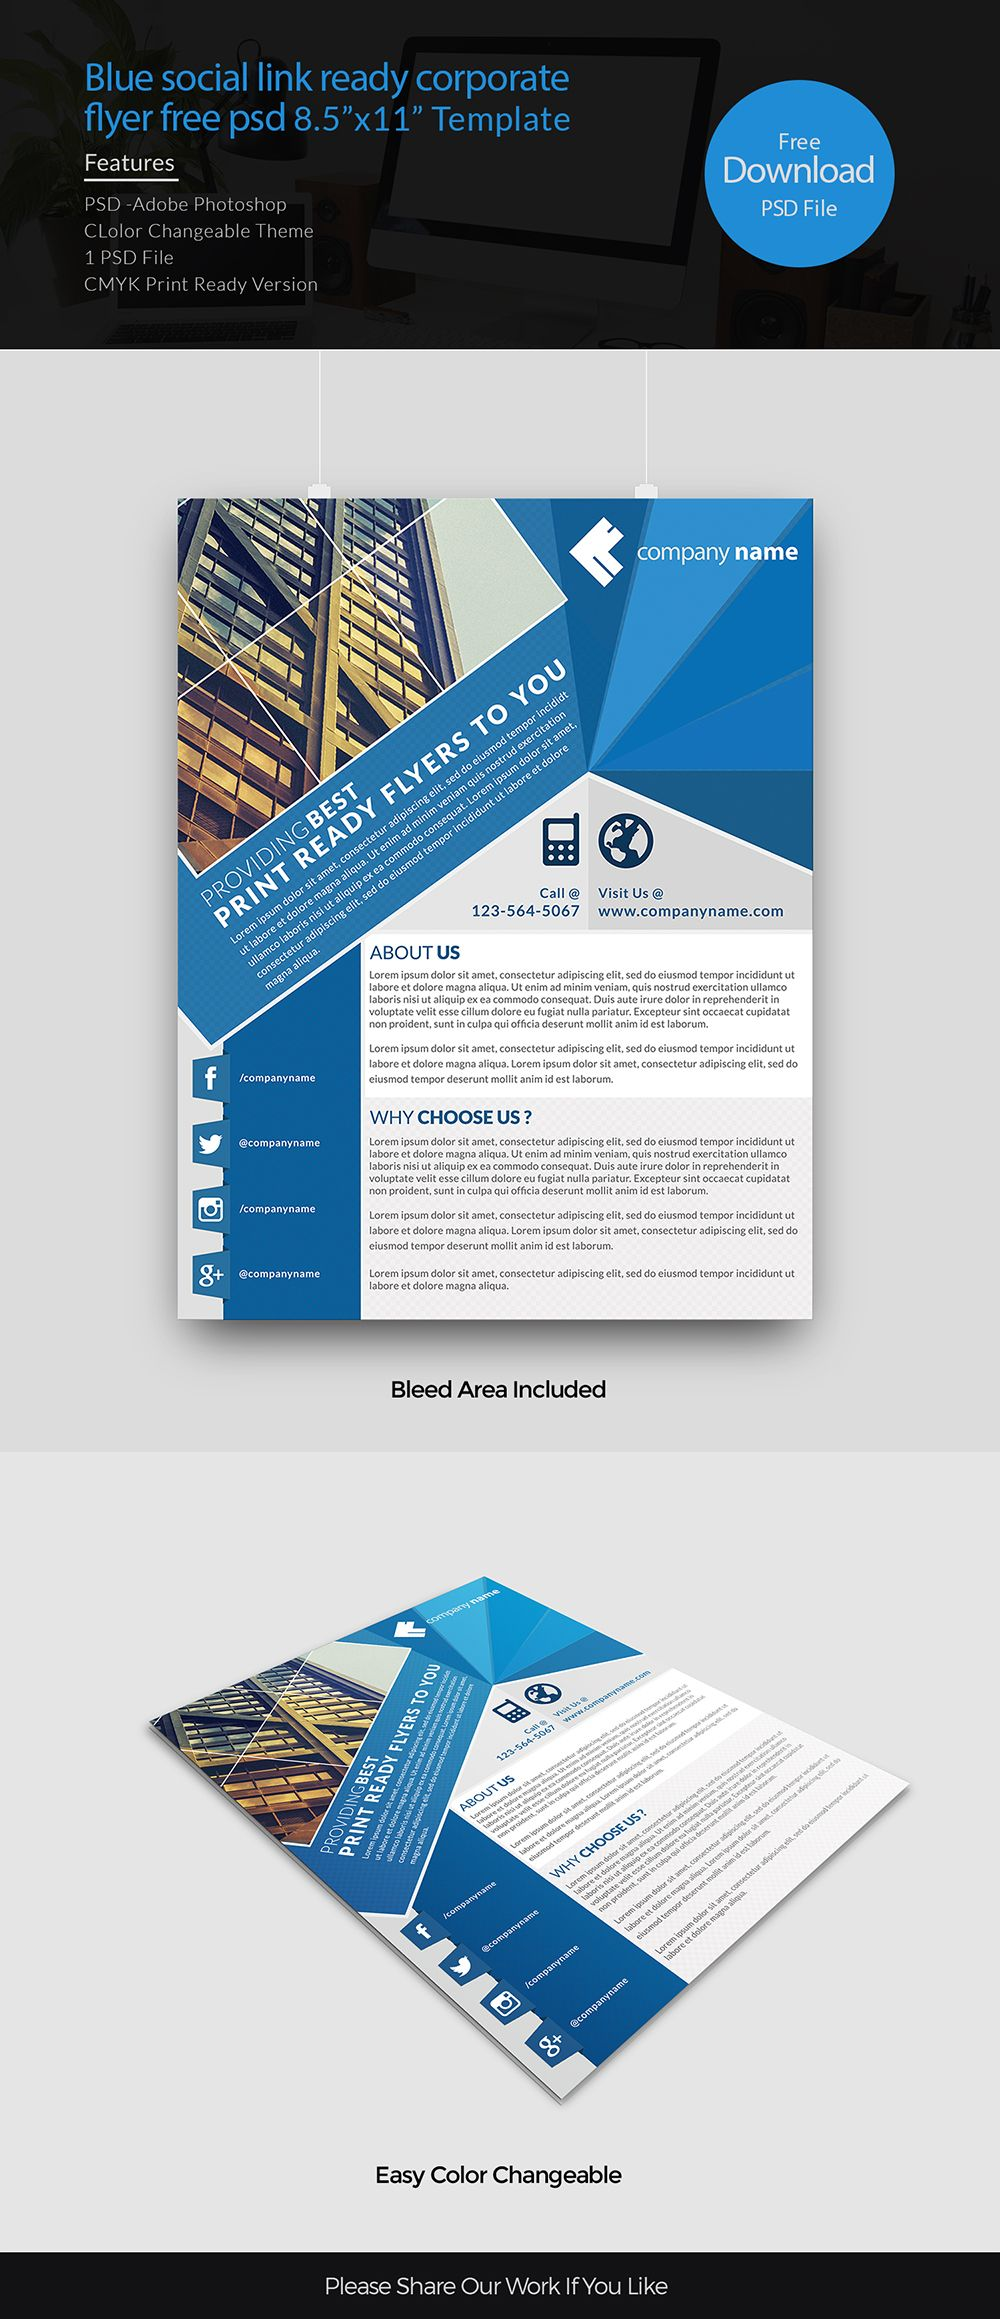 Blue Social Link Ready Corporate Flyer Free Psd  Print Ready